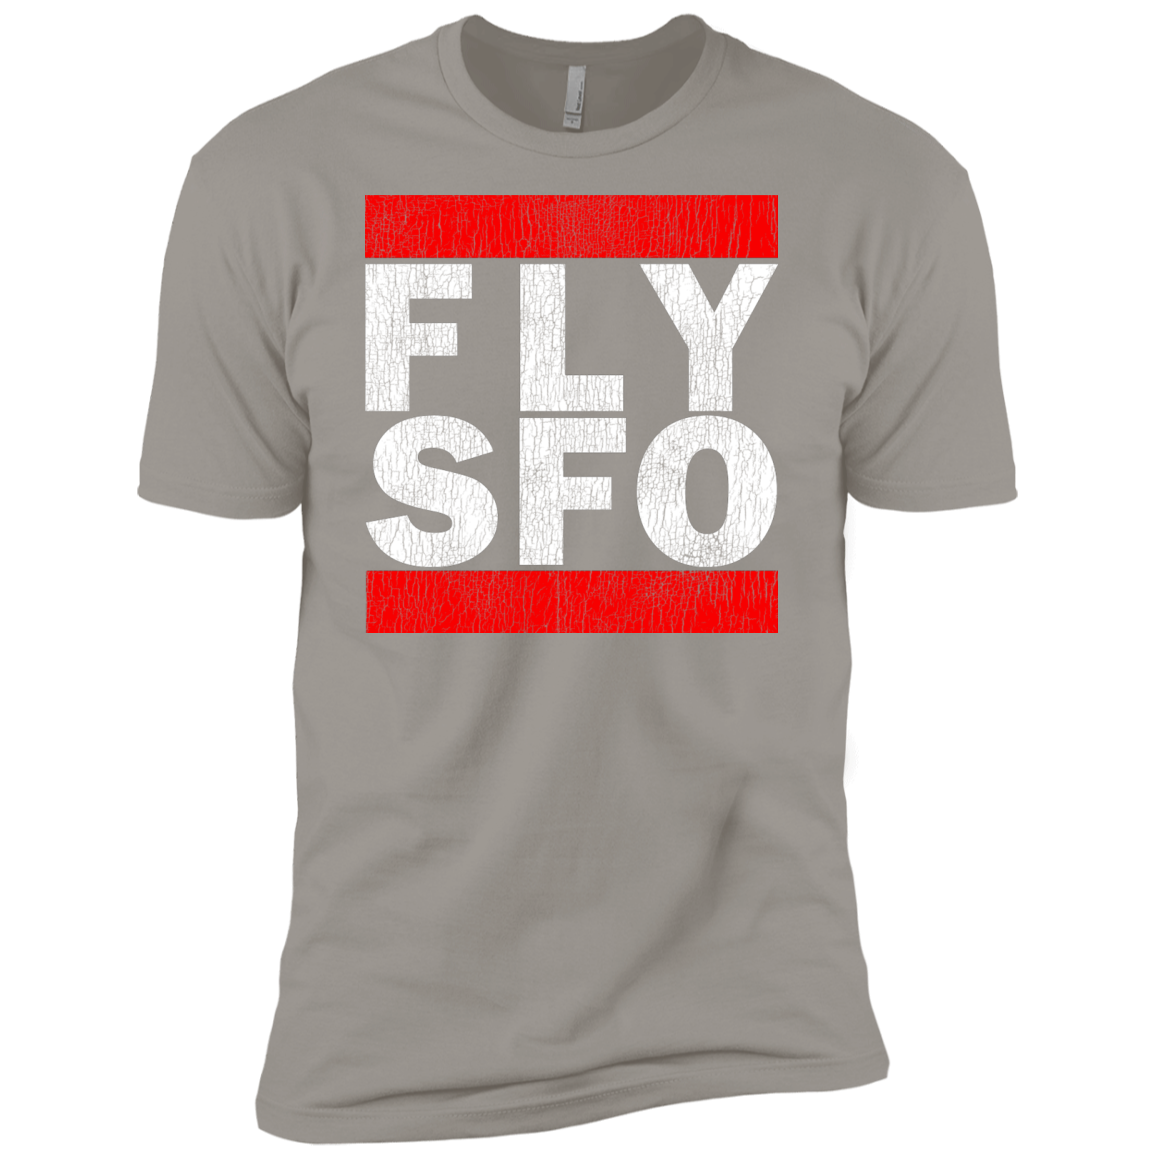 MEN'S FLY SFO (SAN FRANCISCO) WHITE VINTAGE PRINT SHIRTS